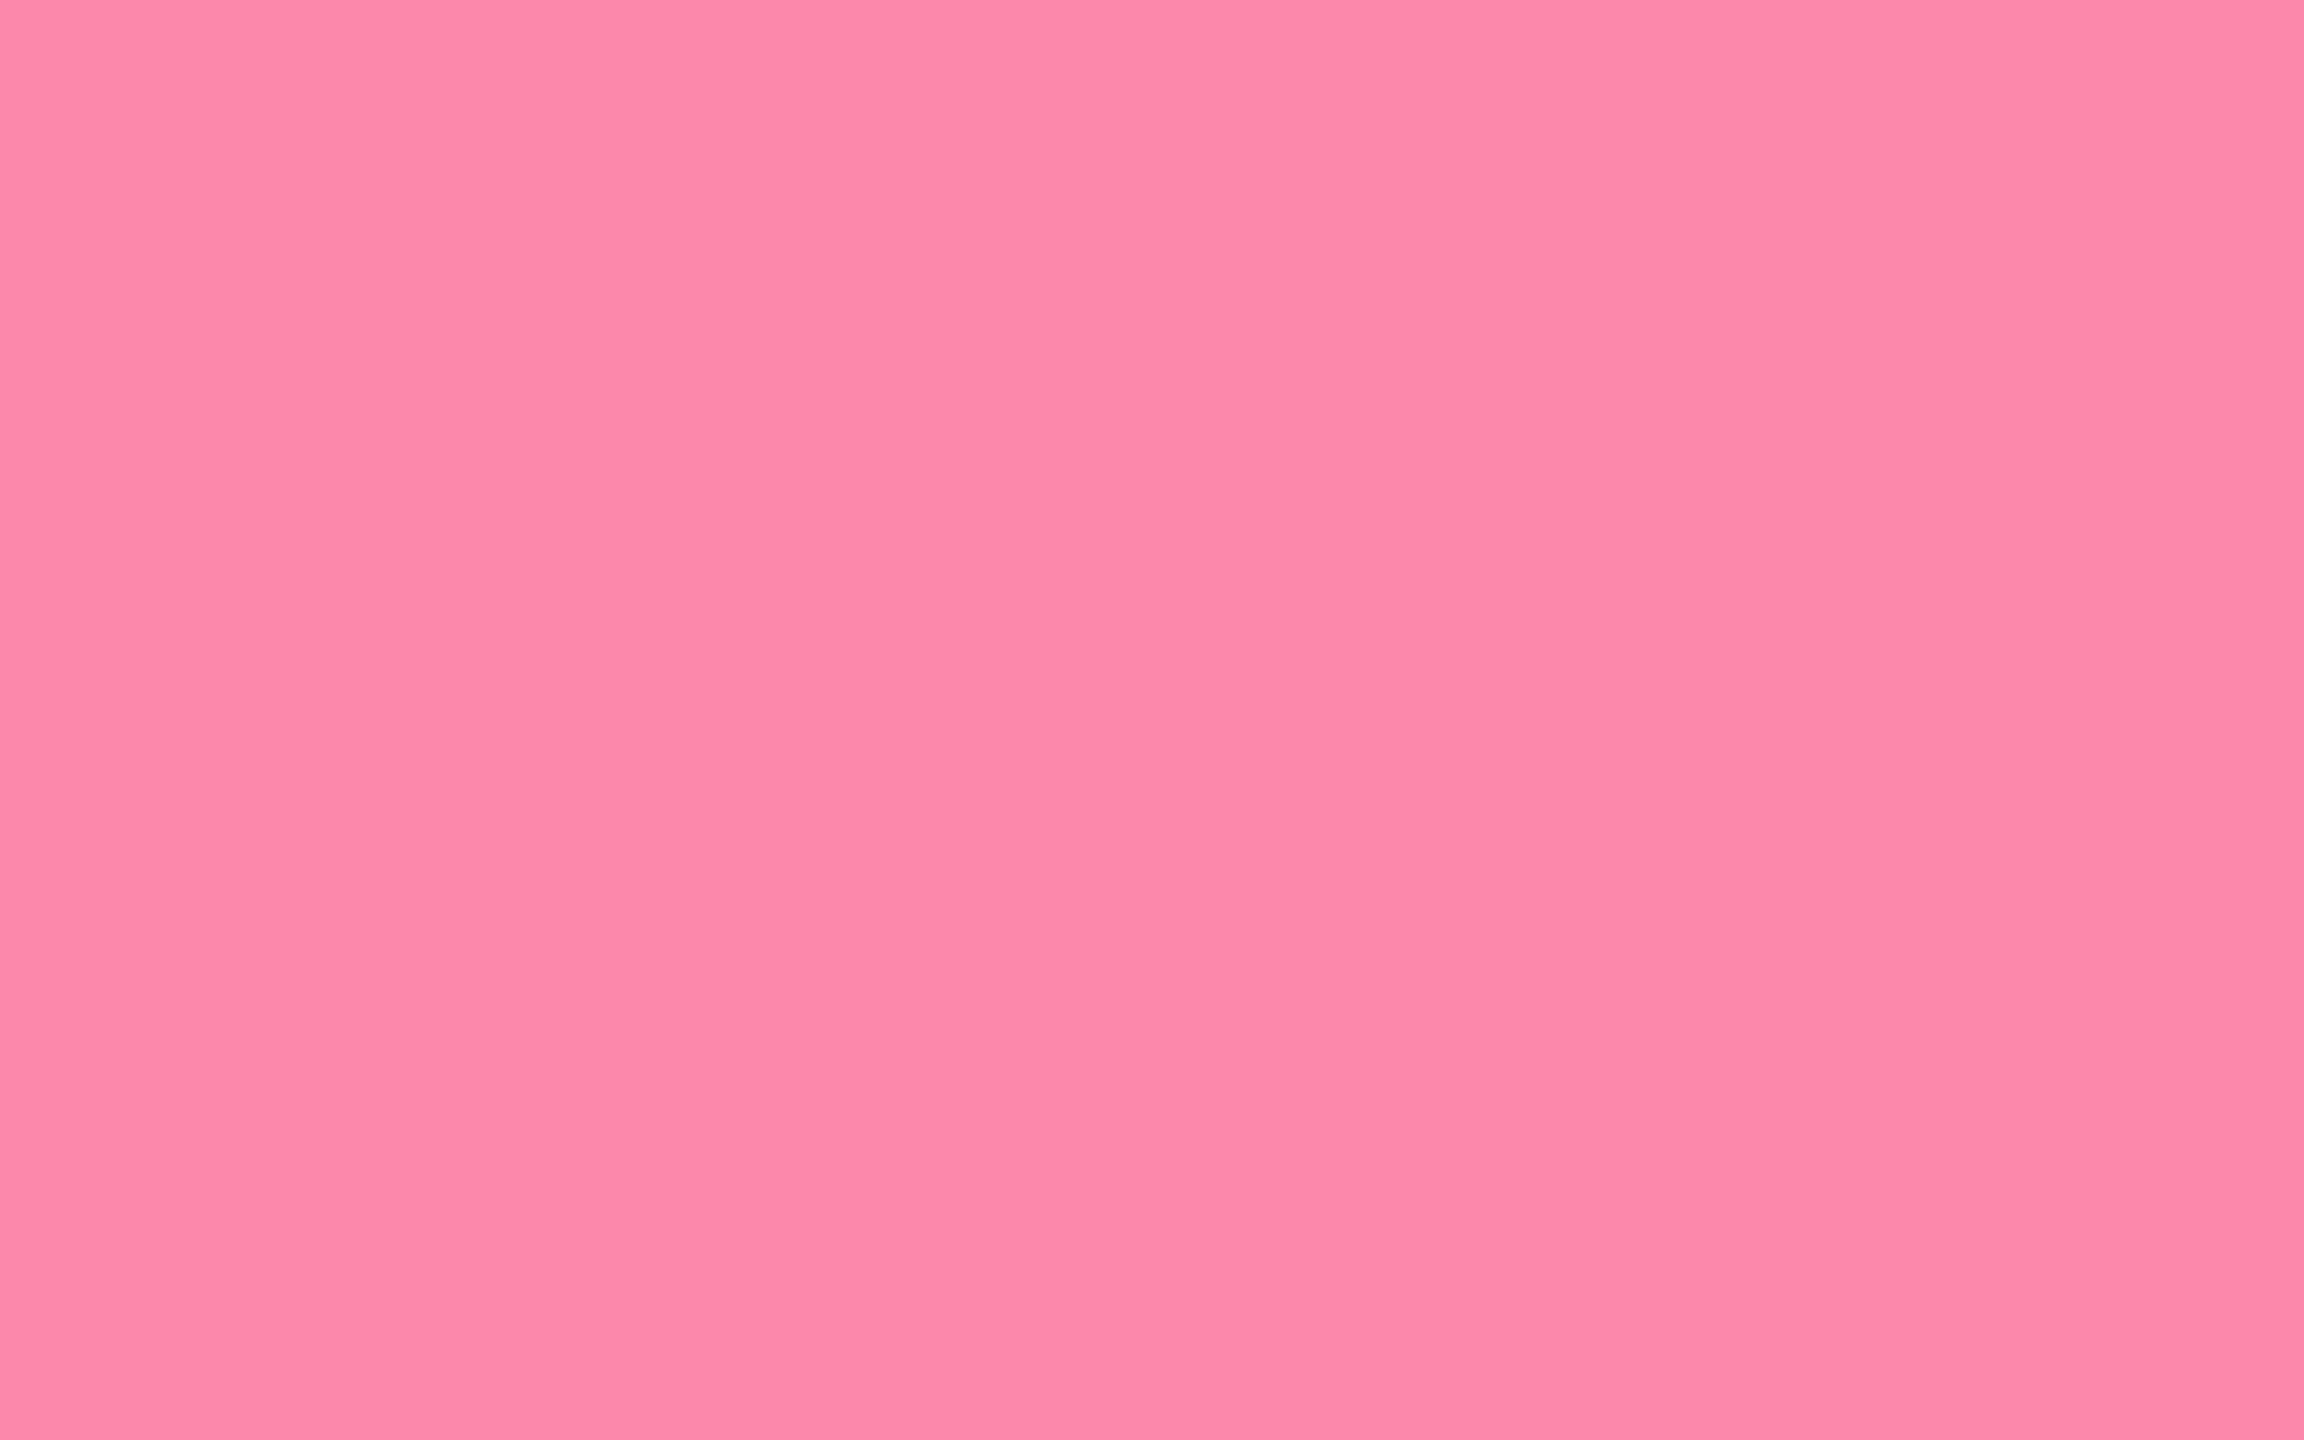 2304x1440 Tickle Me Pink Solid Color Background